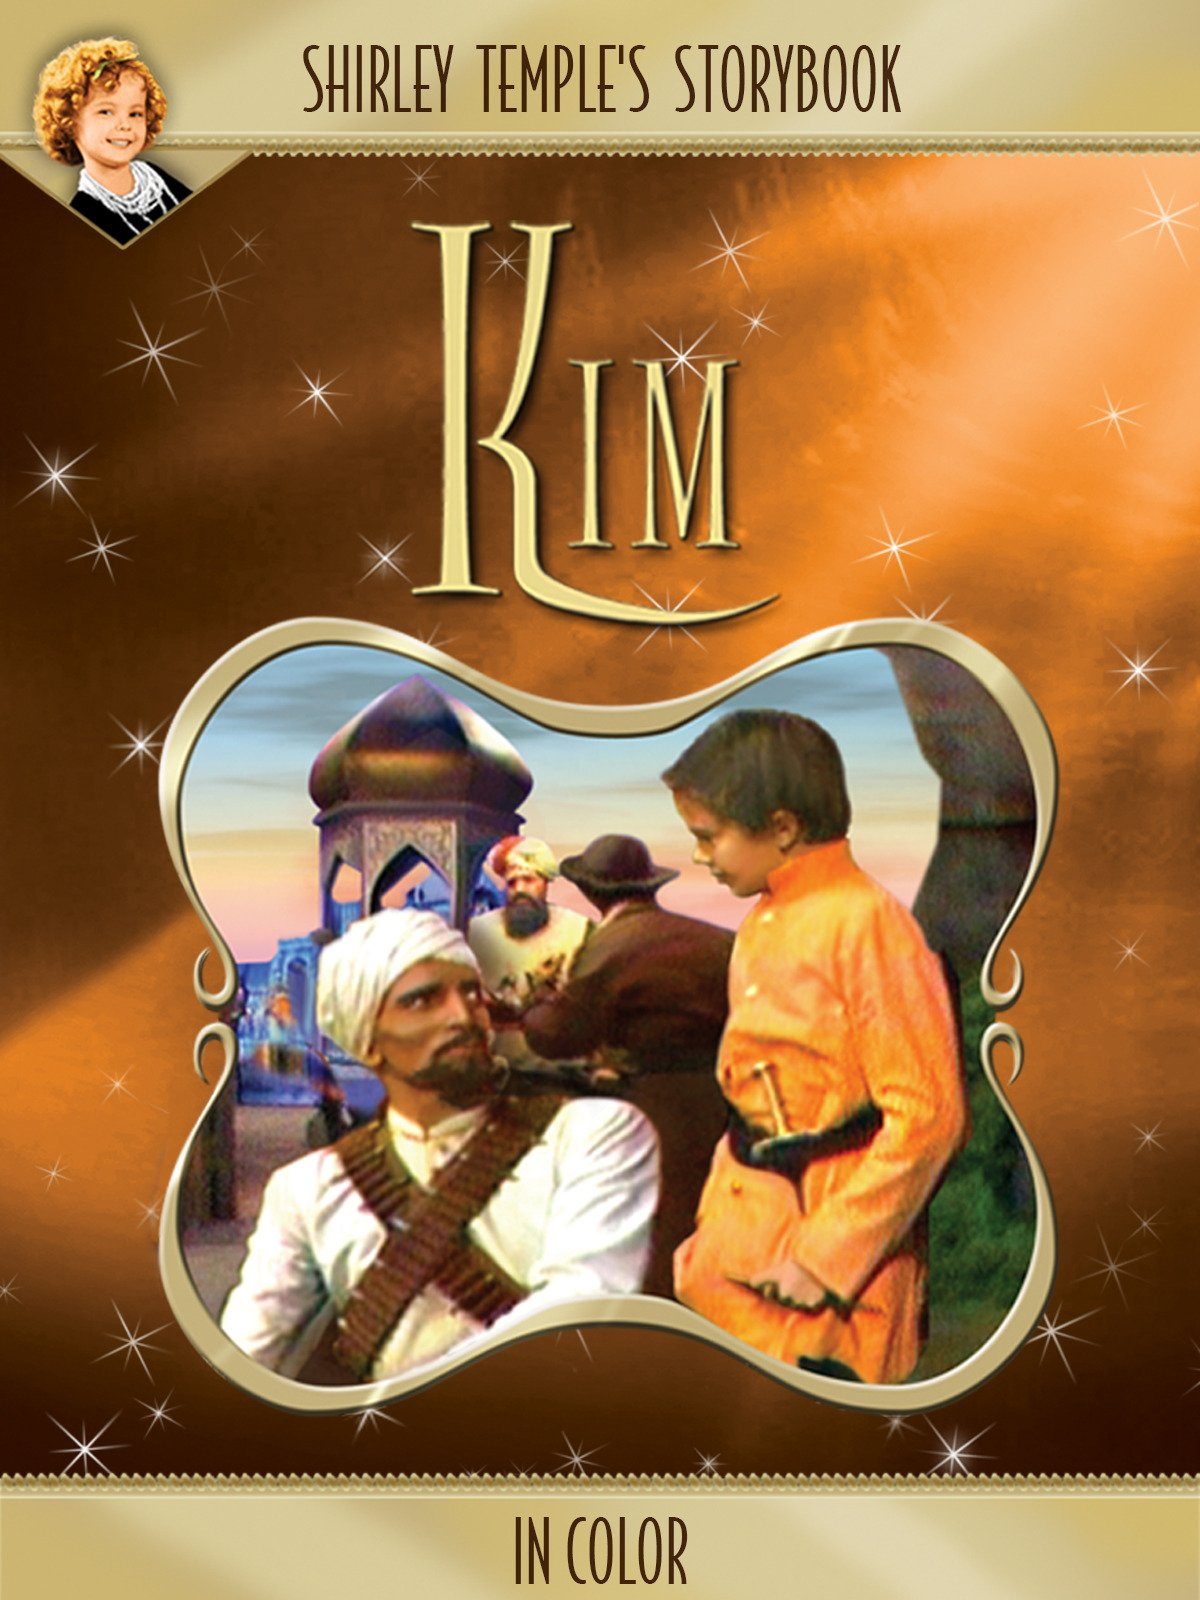 Shriely Temple's Storybook: Kim (in Color) on Amazon Prime Instant Video UK